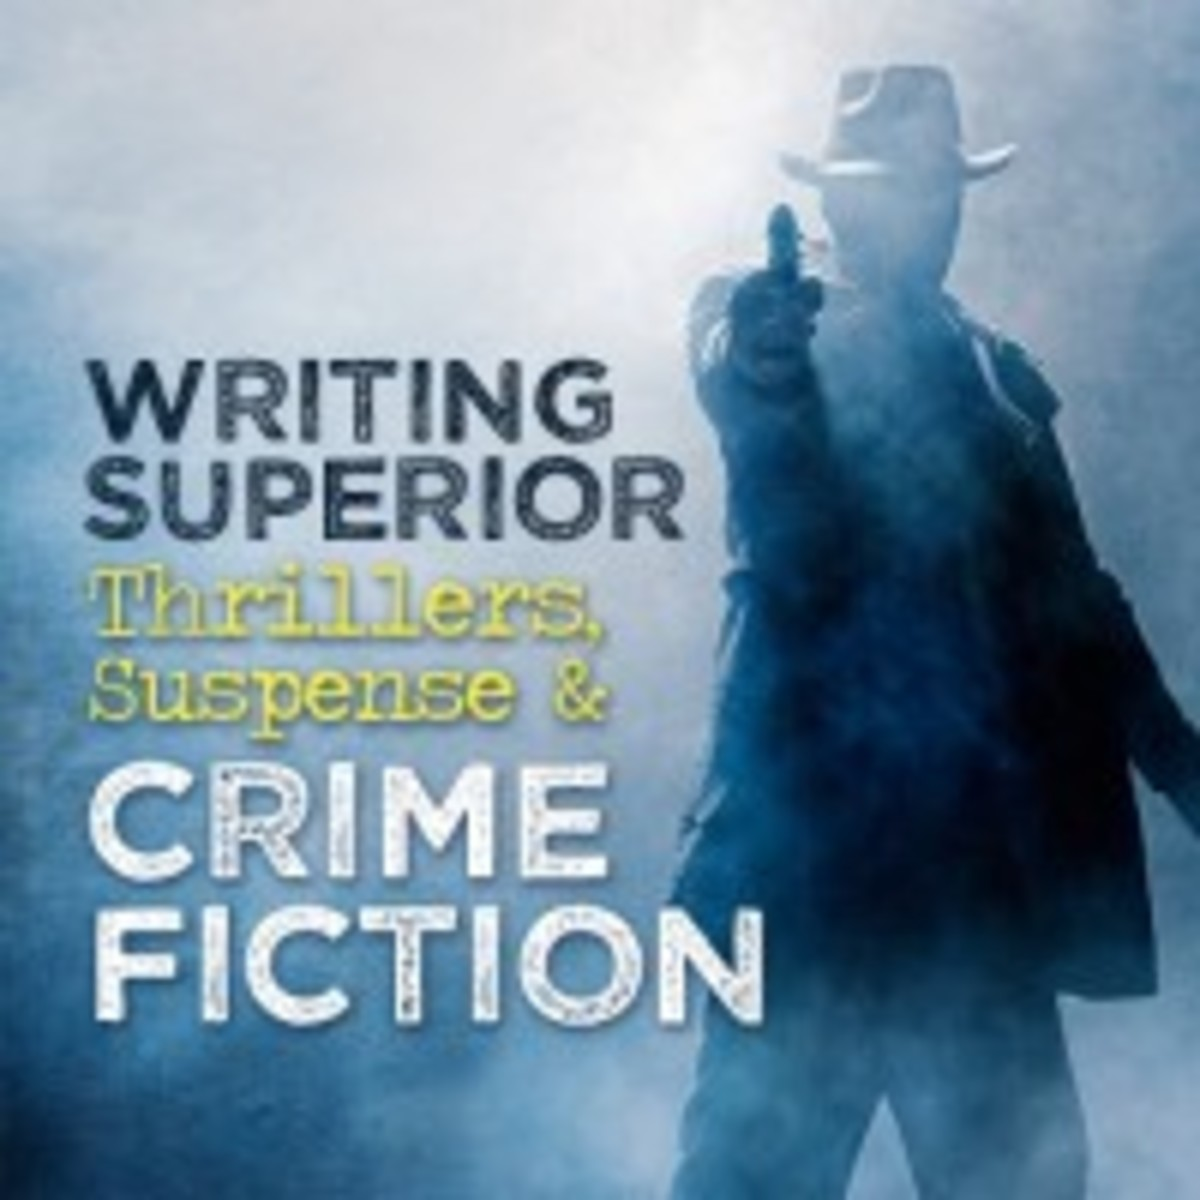 10 Resources for Writing Superior Thrillers, Suspense and Crime Fiction